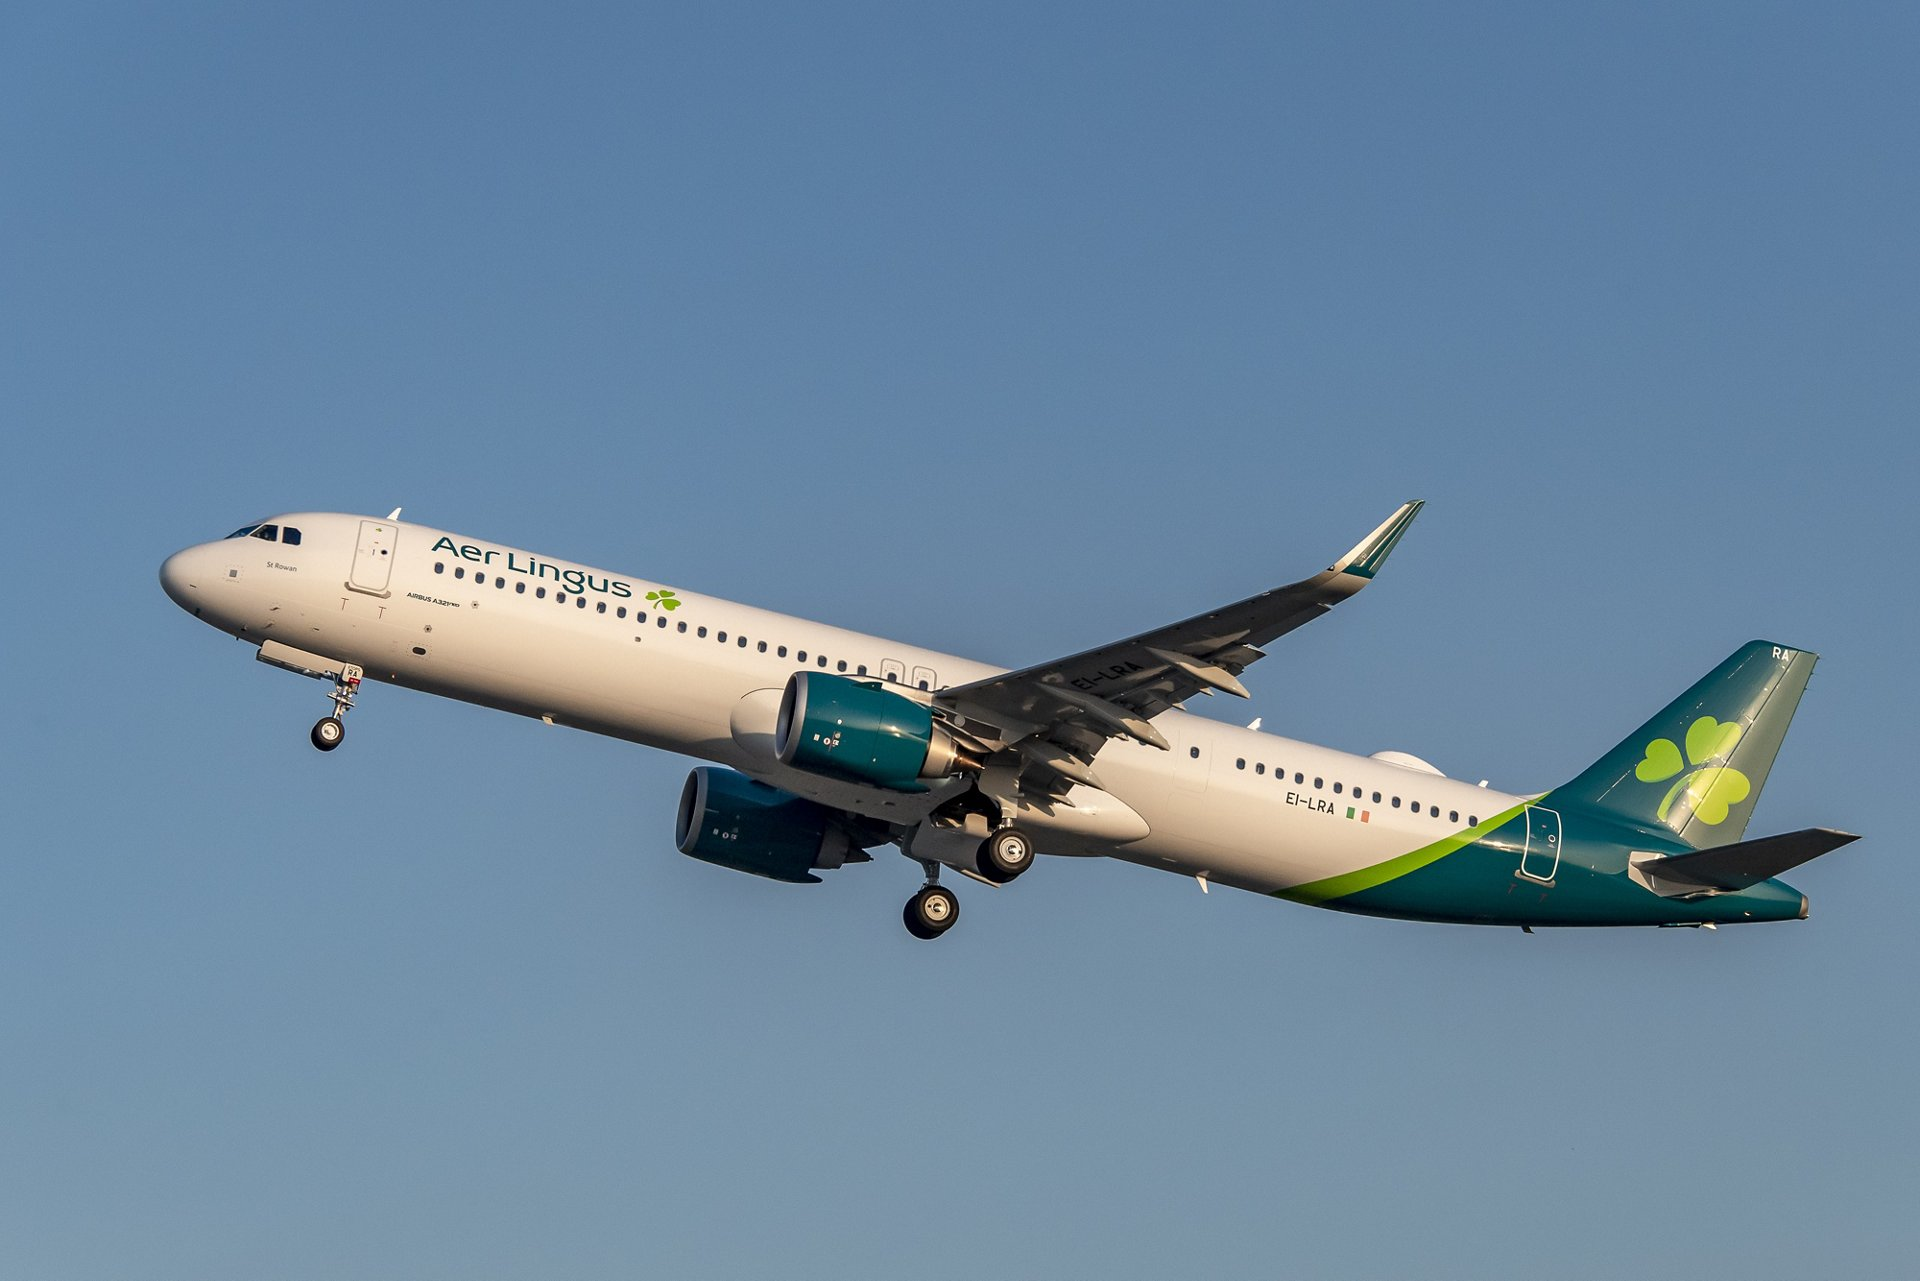 Ireland's national carrier Aer Lingus has taken delivery of its first of eight A321LR aircraft, becoming the first airline in International Airlines Group (IAG) to operate the type.